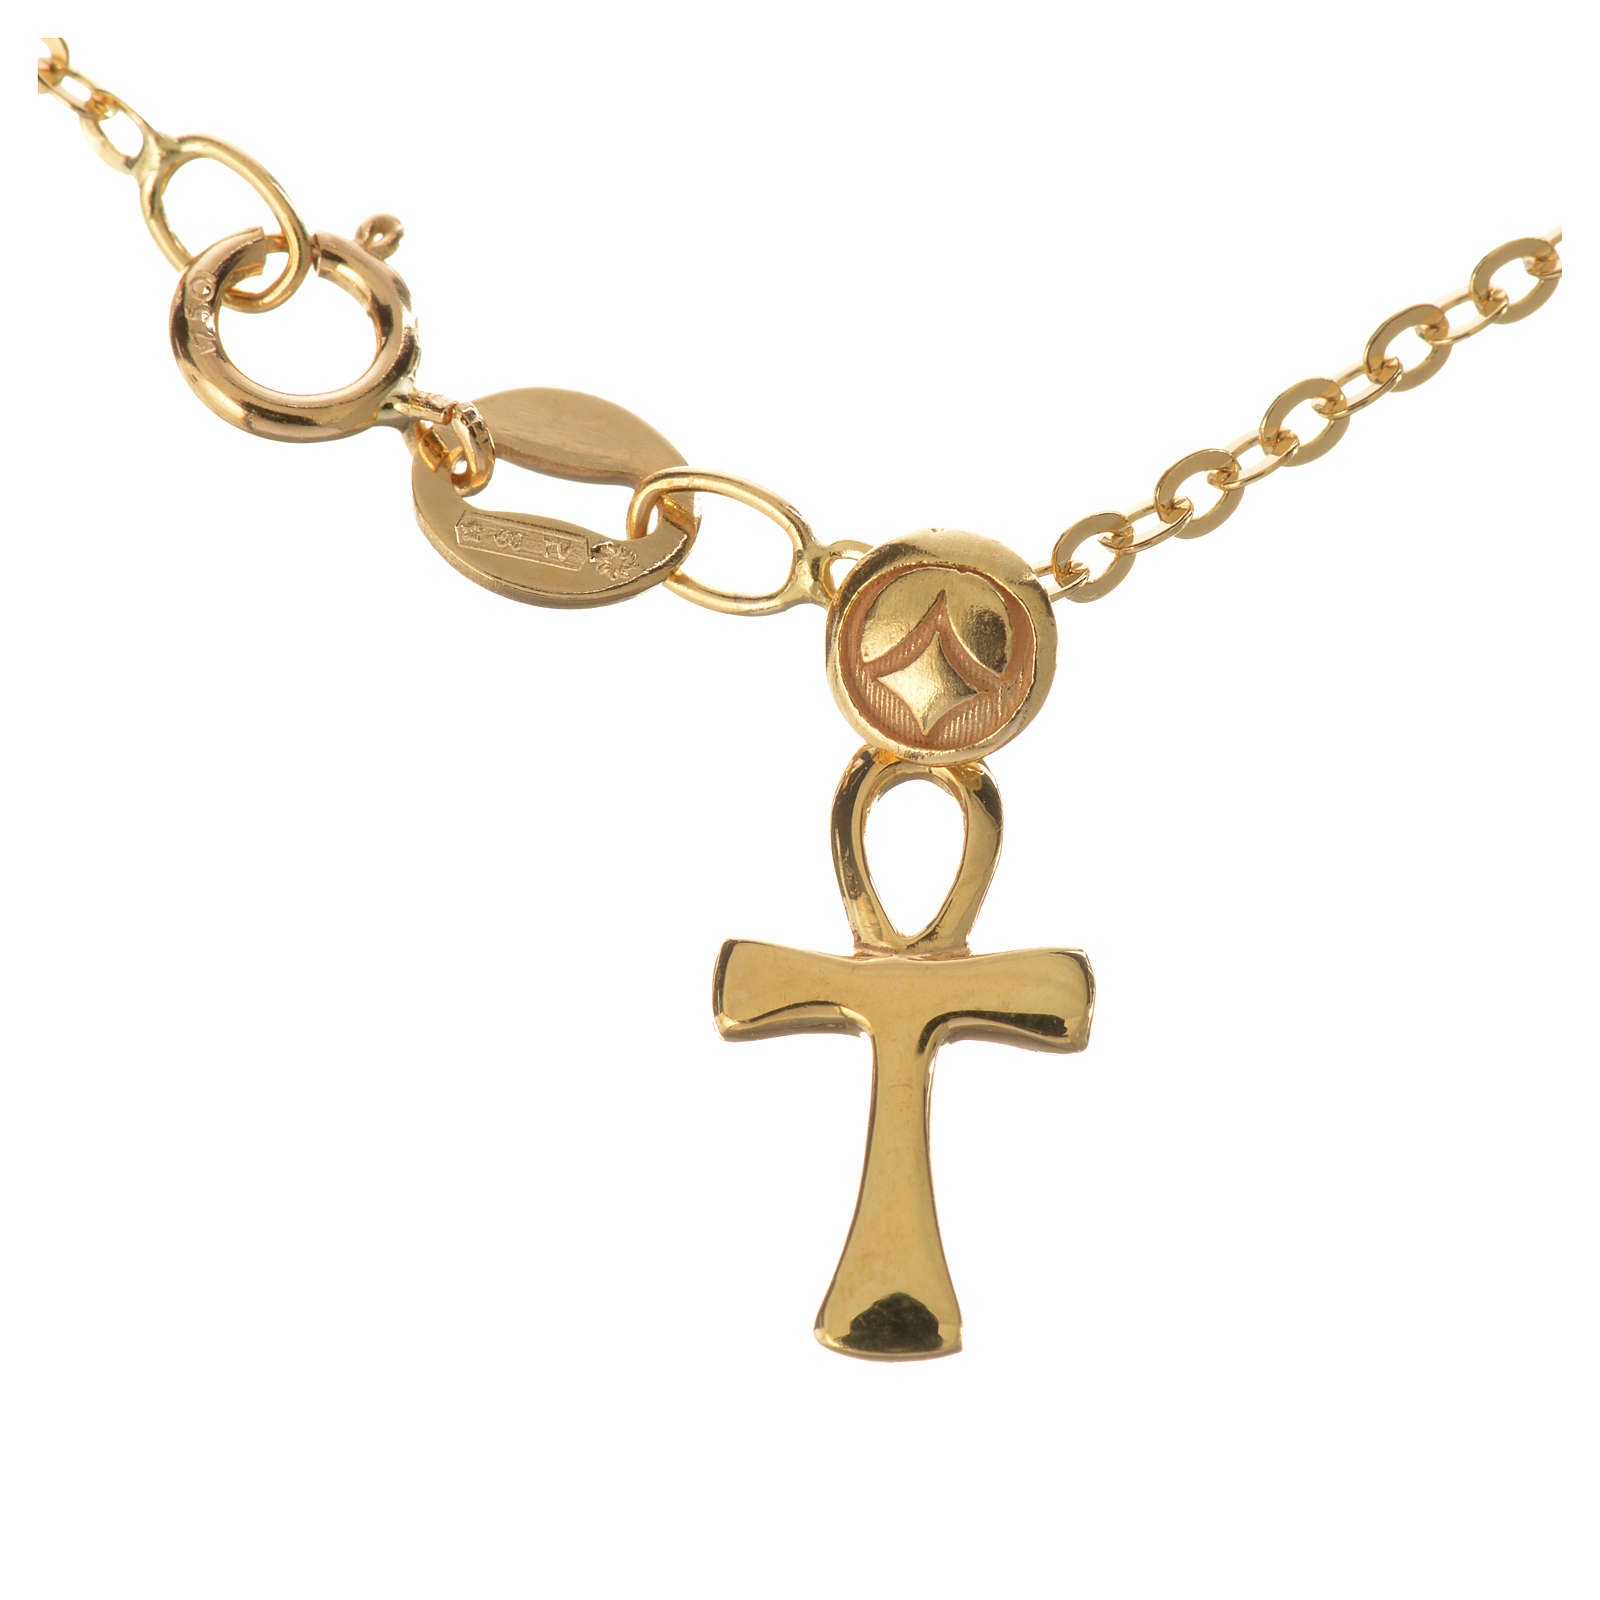 Bracelet with key of life pendant in 18k gold 1,03 grams 4